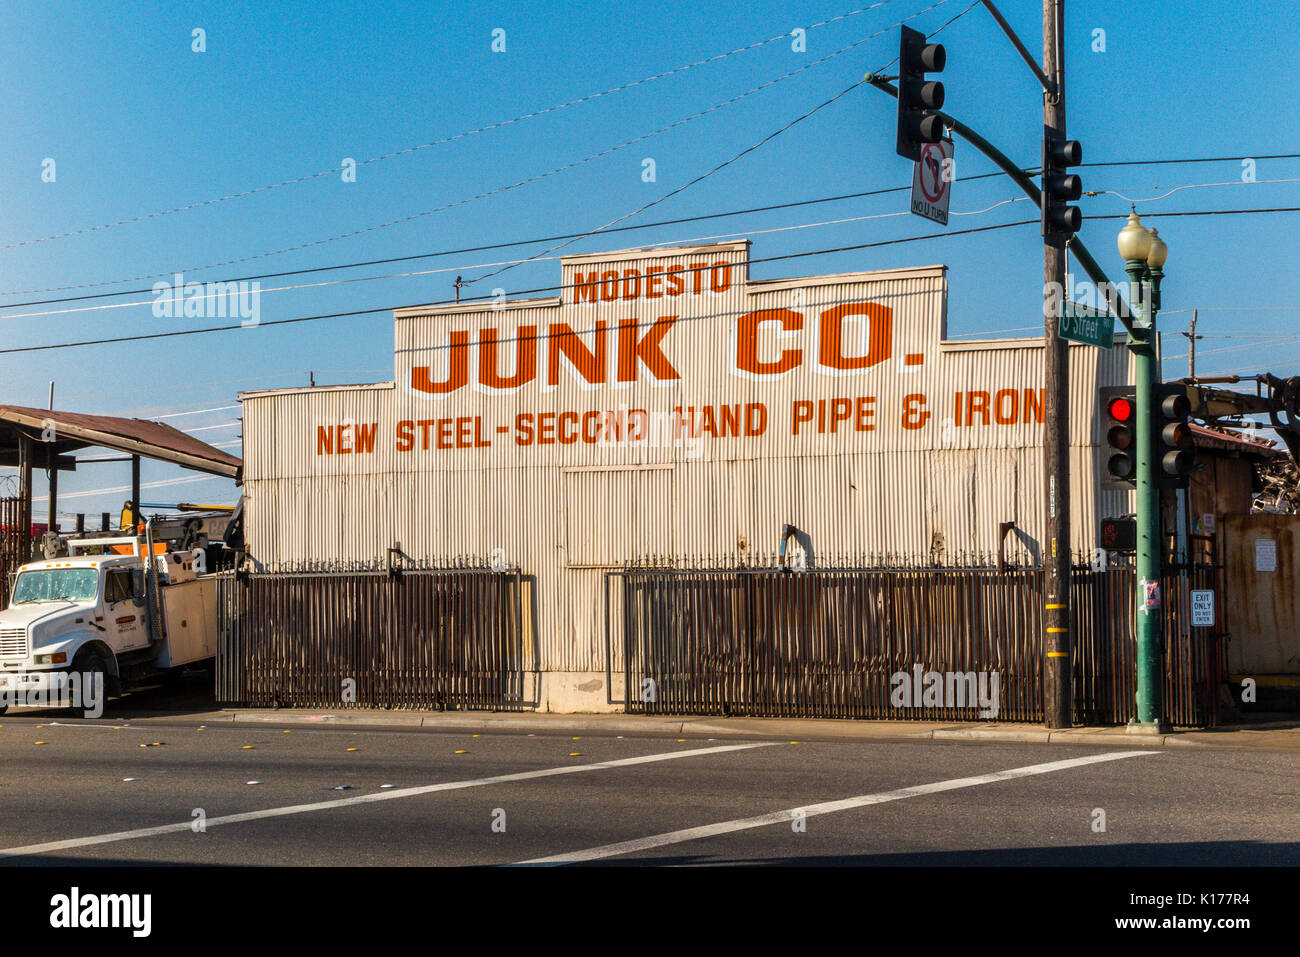 Modesto Junk company a metal recycler and seller of used metals. - Stock Image